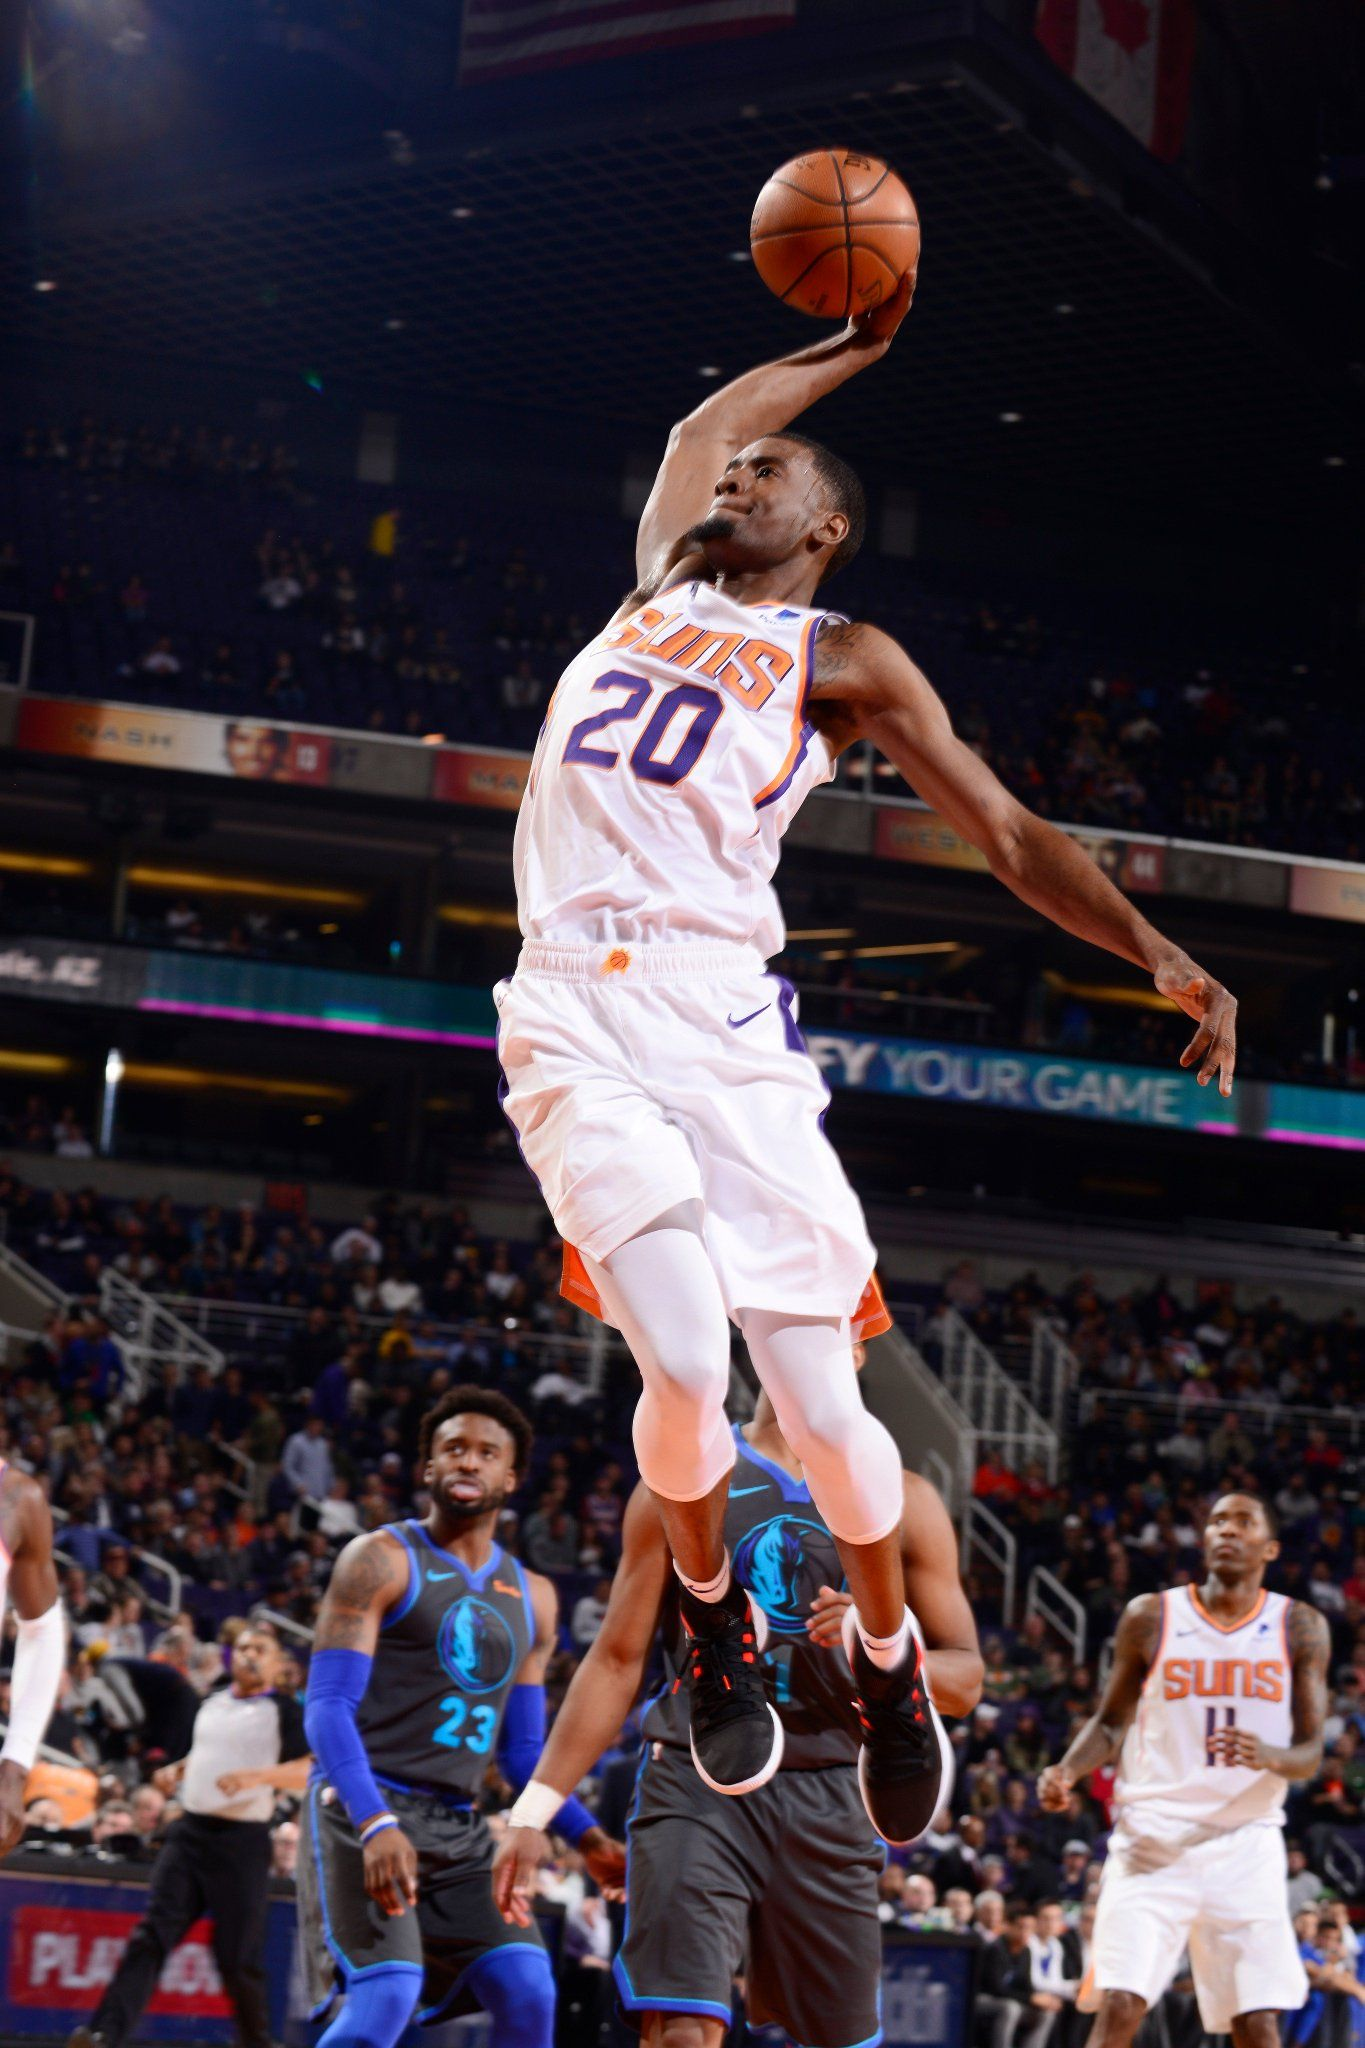 Nba On Twitter Tj Warren Leads All Scorers With 30 Pts As The In 2020 Nba Basketball Teams Nba Sports Basketball